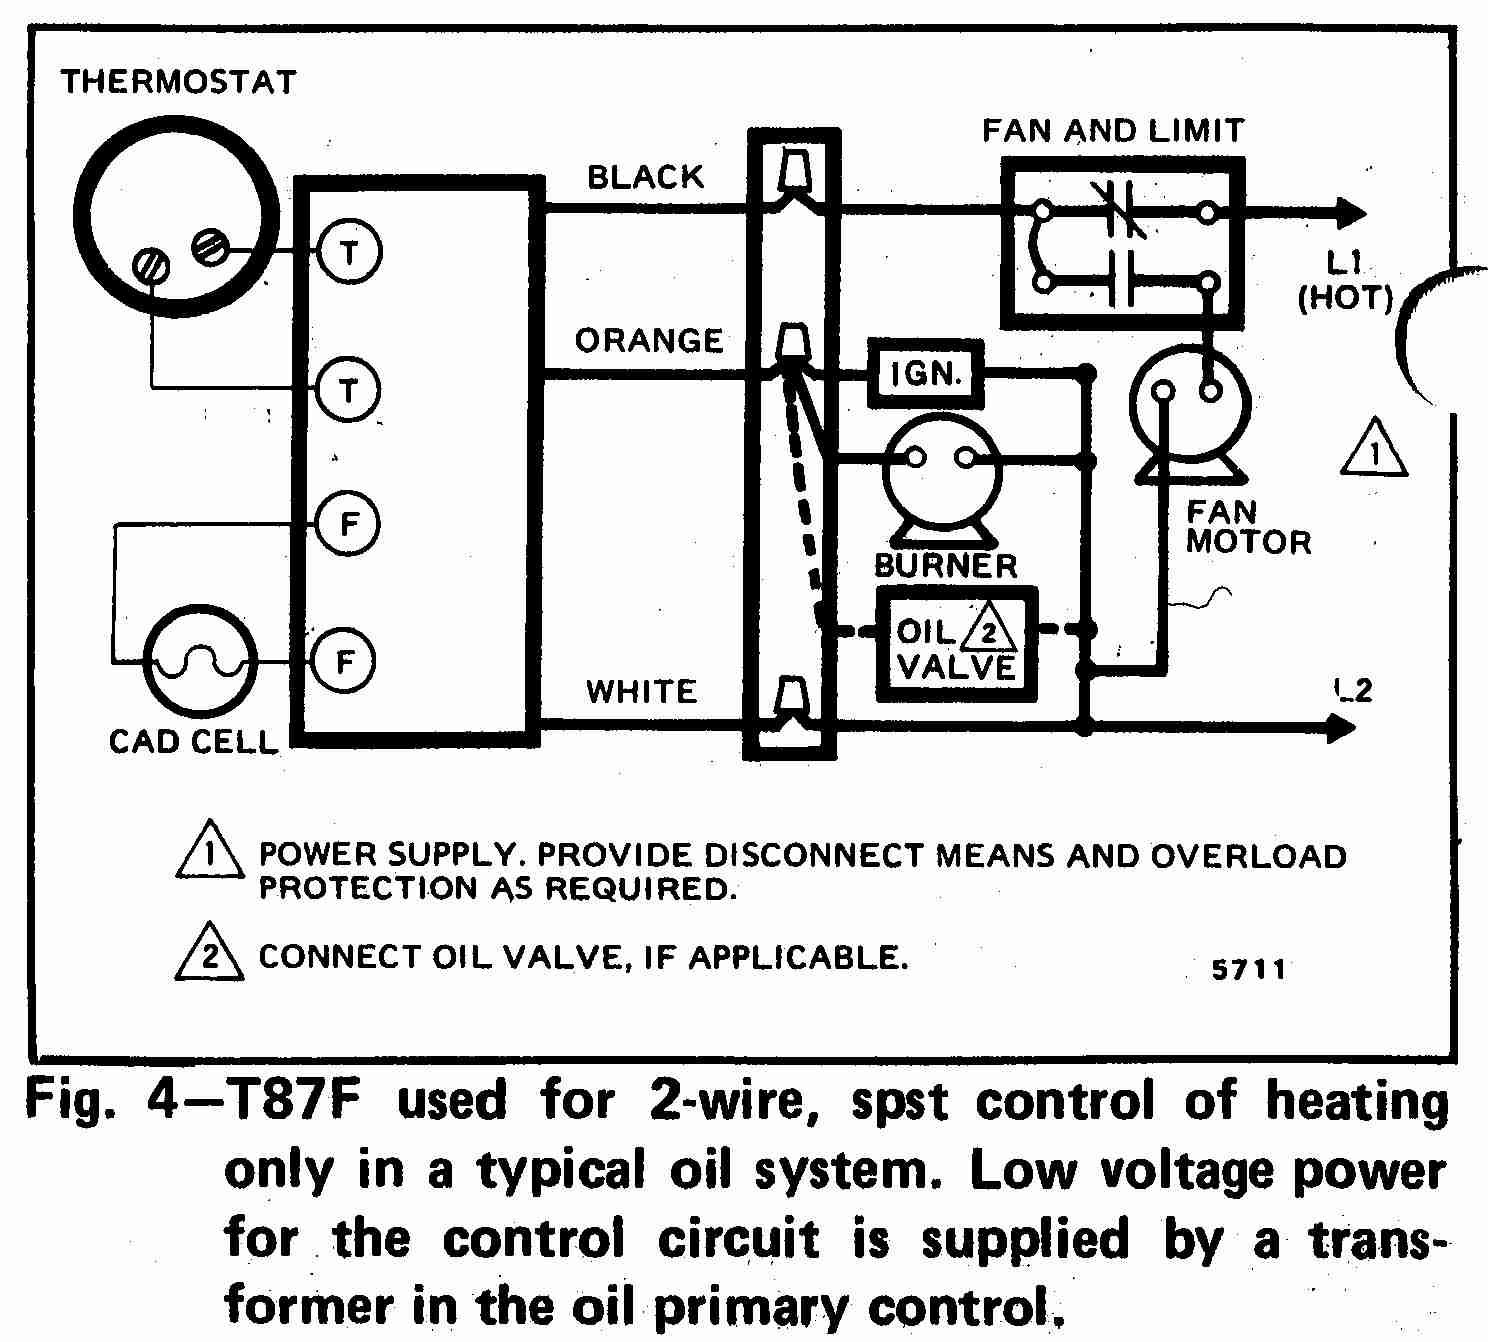 DIAGRAM] 3 Wire Thermostat Wiring Diagram Hvac FULL Version HD Quality Diagram  Hvac - MATE-DIAGRAM.RADD.FRDiagram Database - Radd